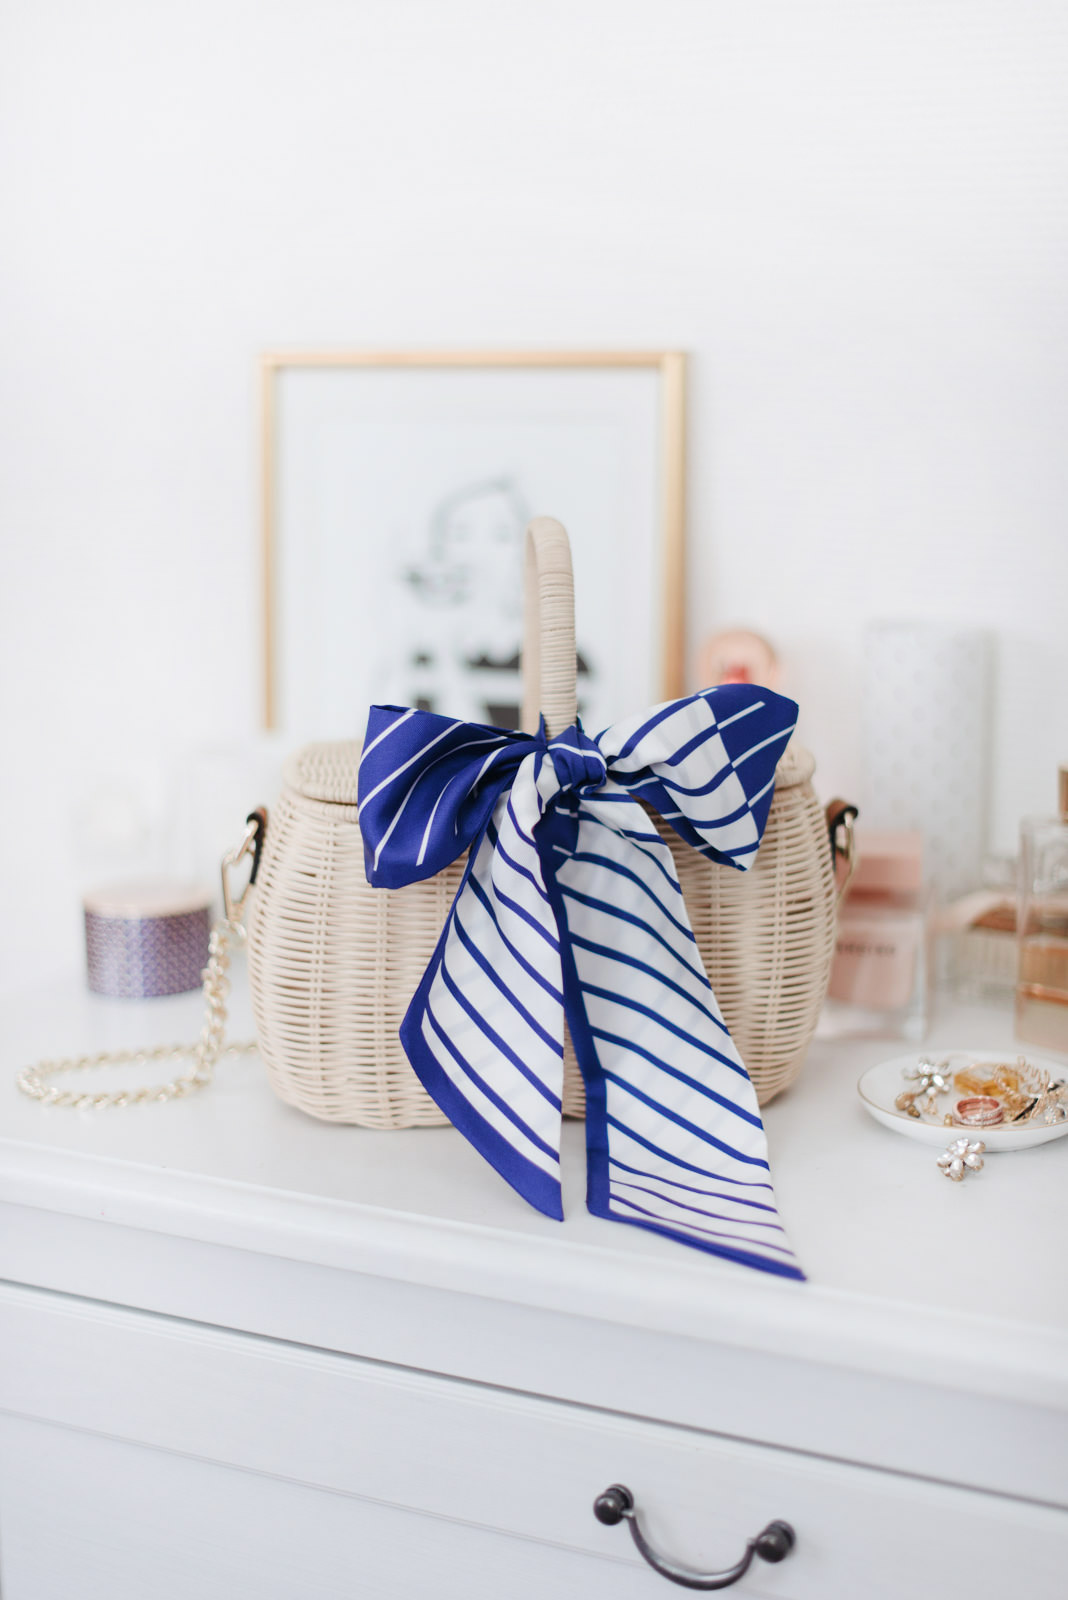 Blog-mode-And-The-City-Lifestyle-Cinq-Petites-Choses-213-panier-foulard-jcrew